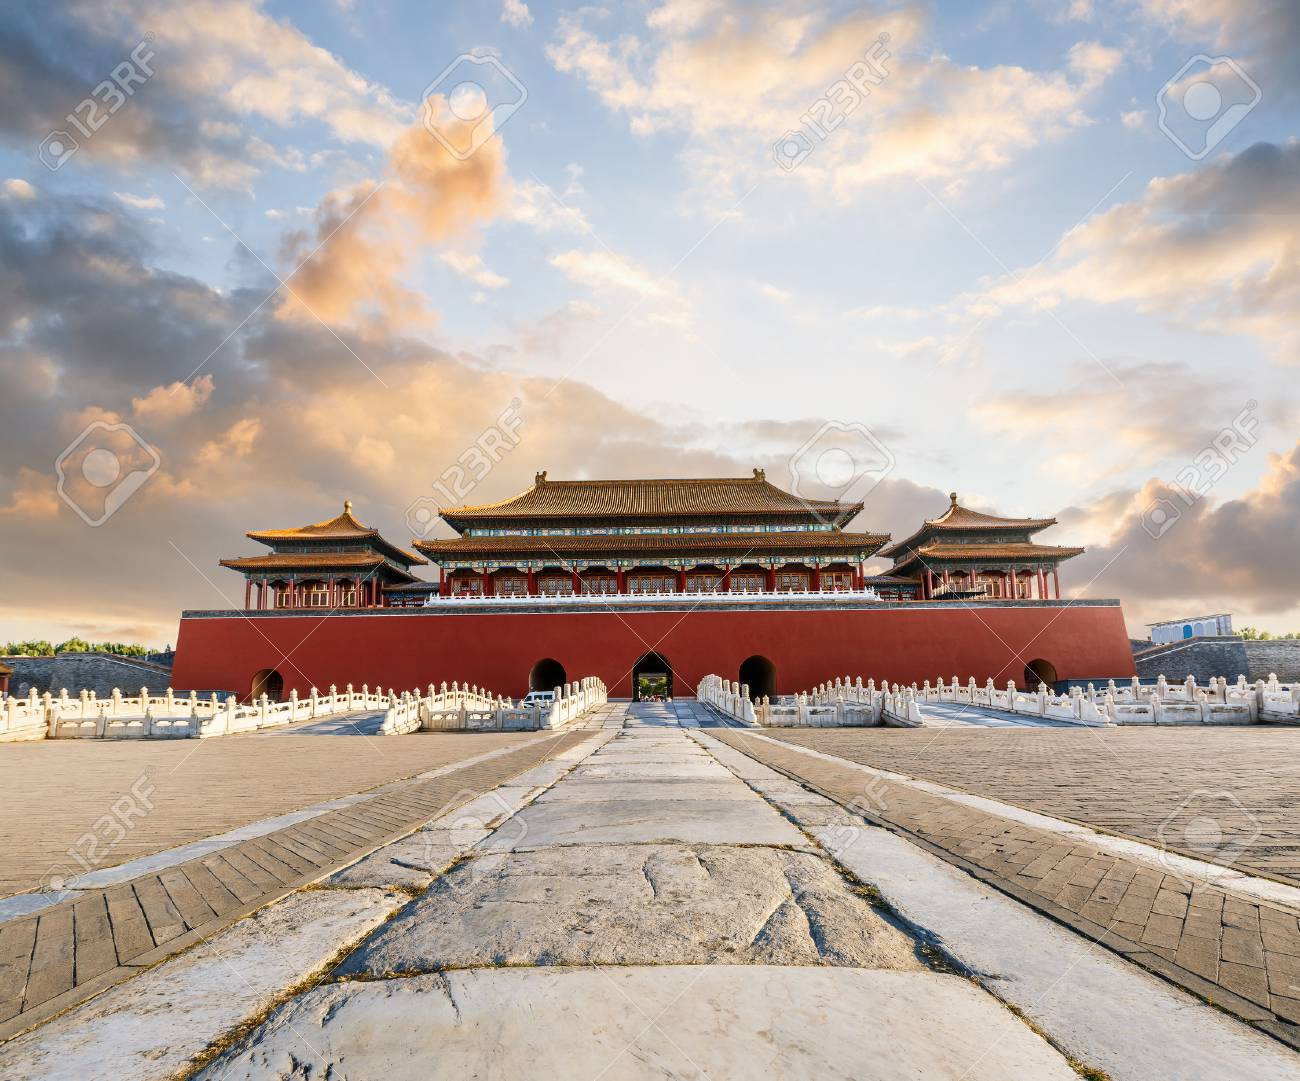 The ancient royal palaces of the Forbidden City in Beijing,China - 62319463